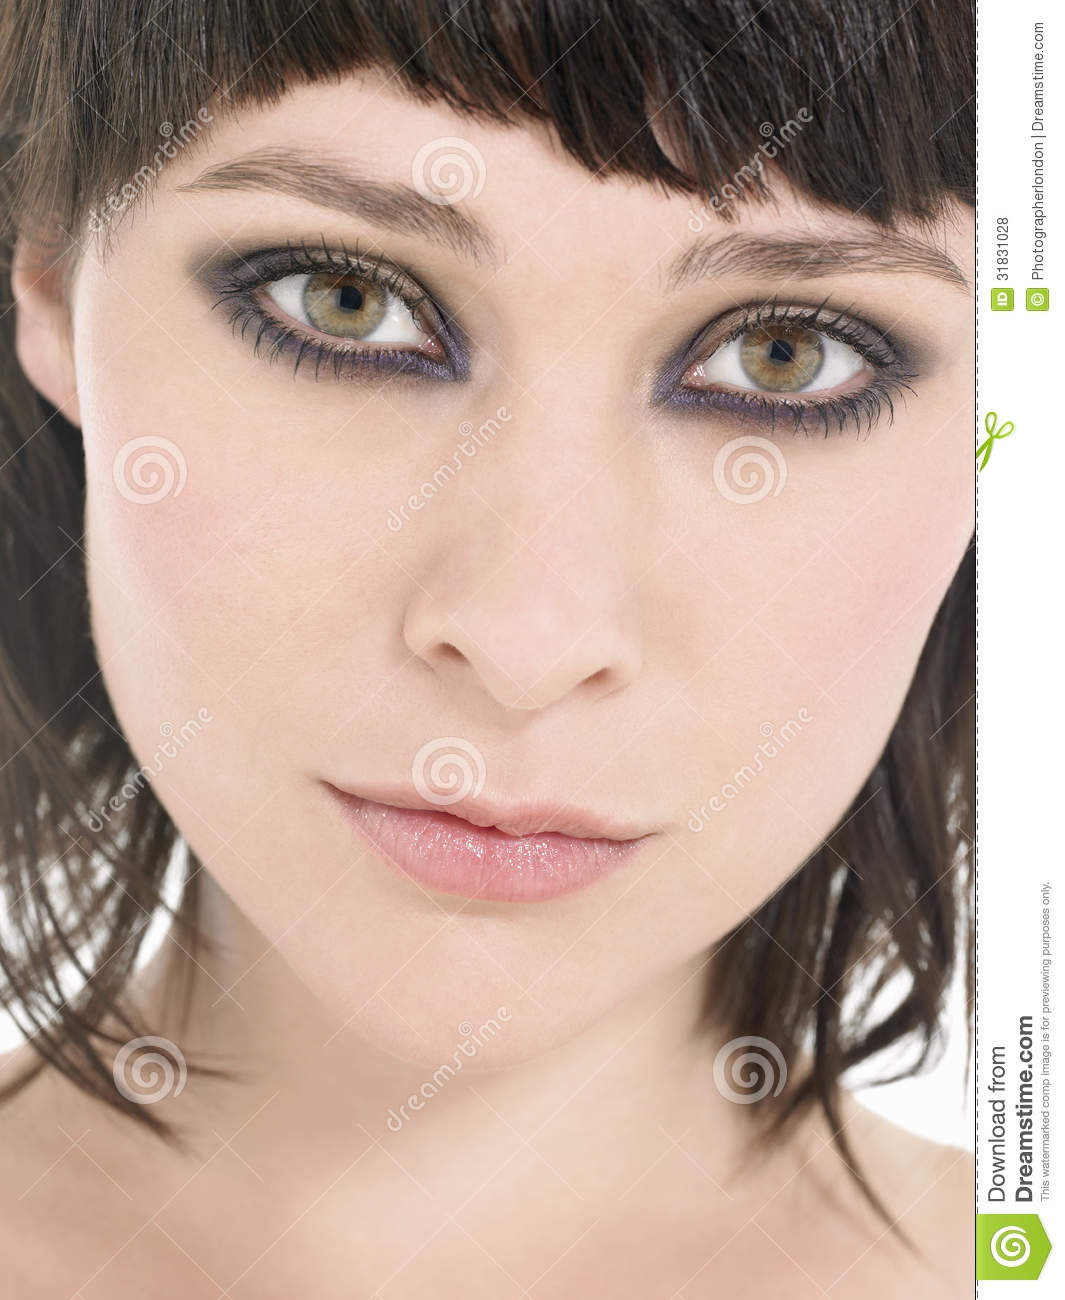 Heavy Makeup Women Pictures To Pin On Pinterest - PinsDaddy